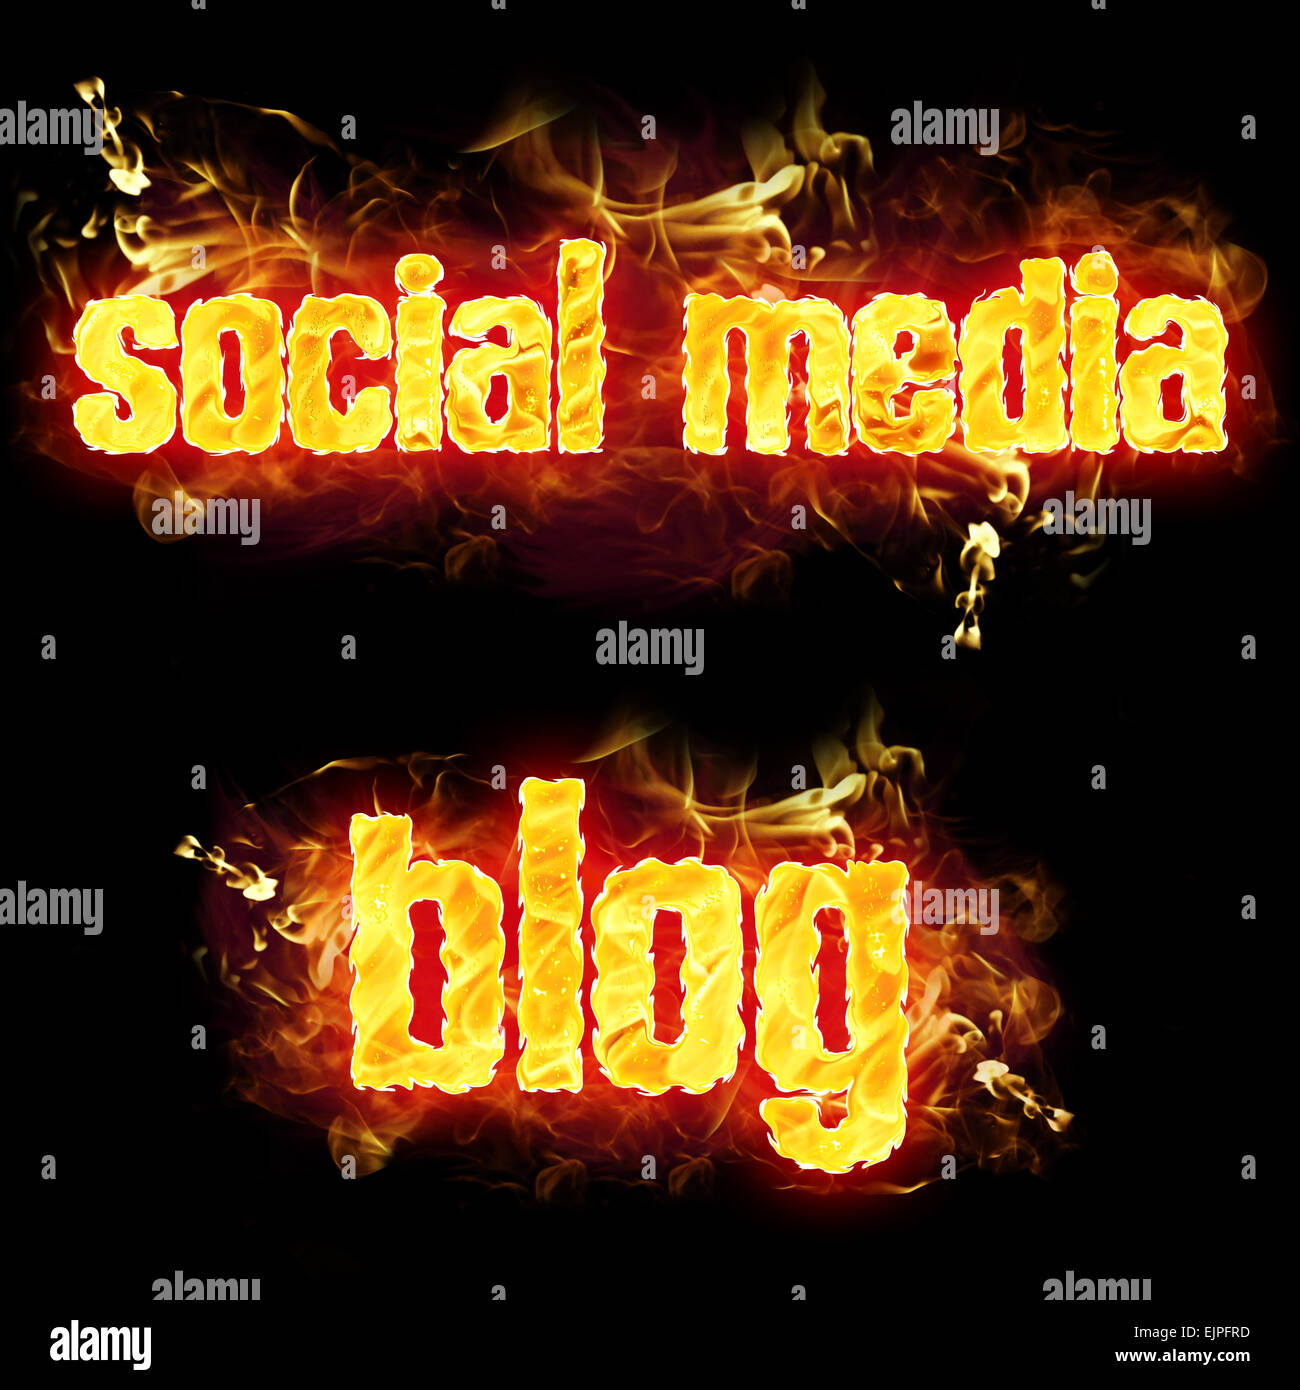 Fire social media blog text badge with burning flames. - Stock Image